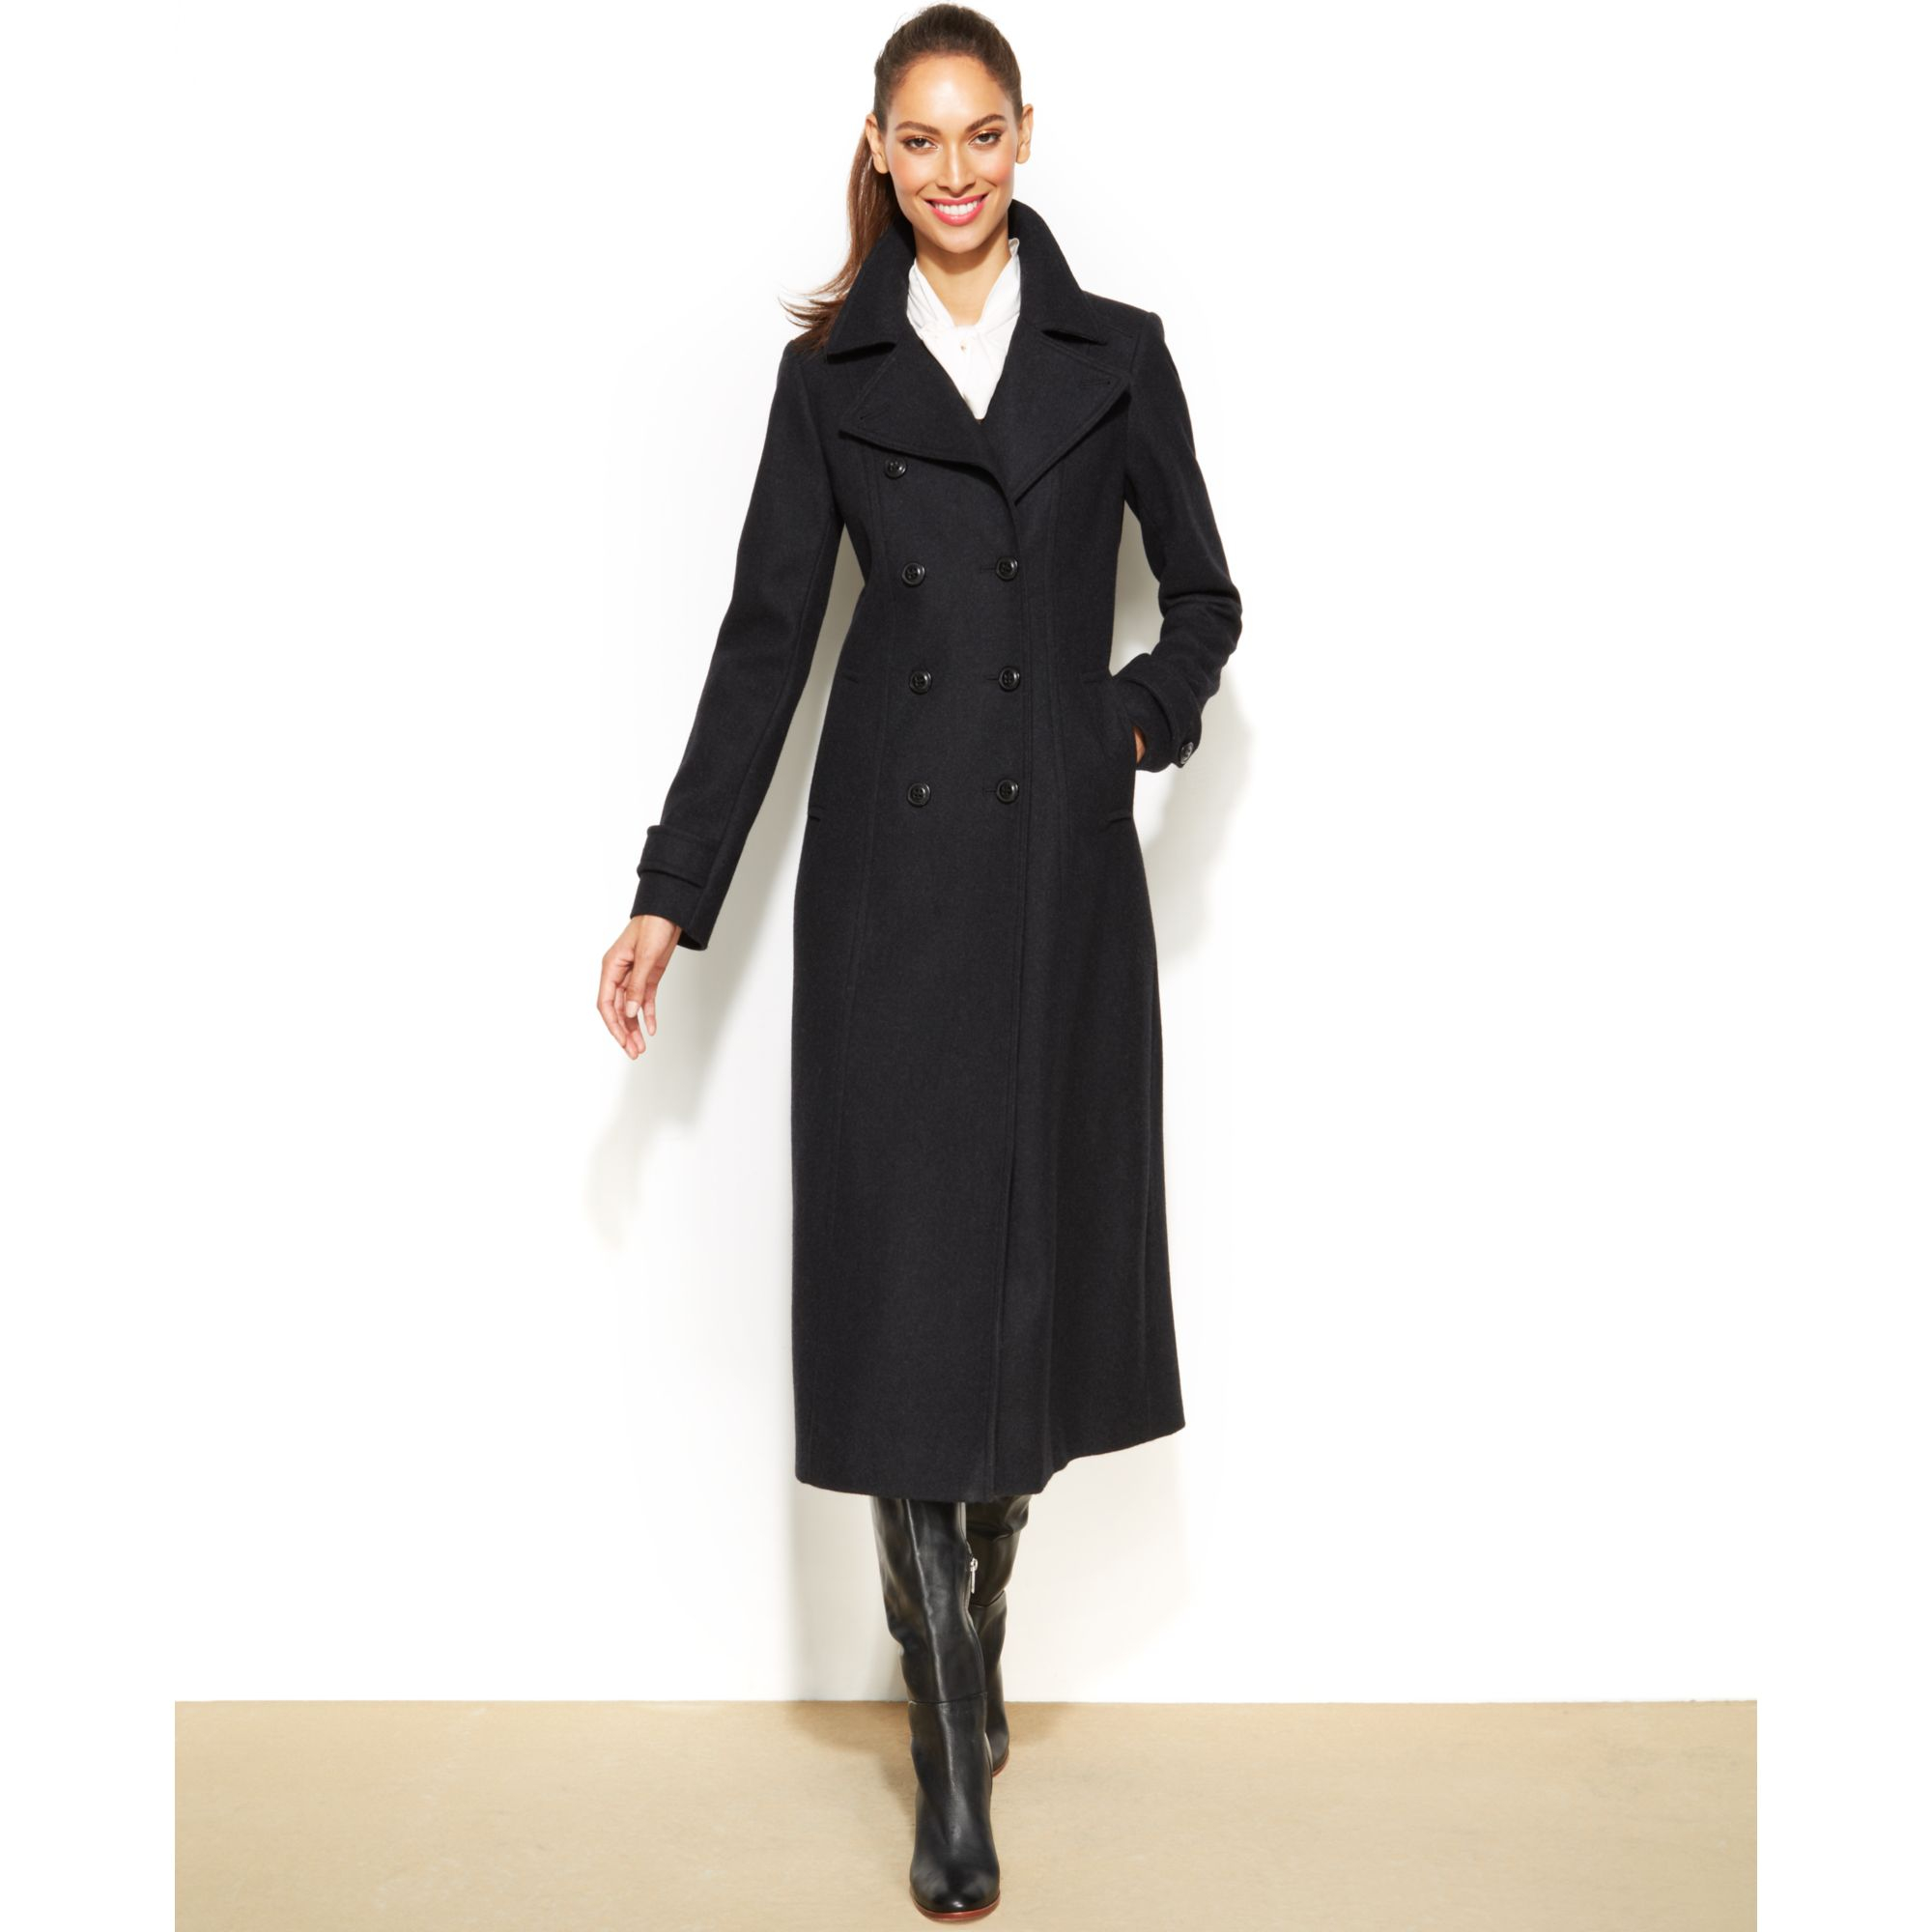 Dkny Petite Double-Breasted Wool-Blend Maxi Coat in Gray (Charcoal